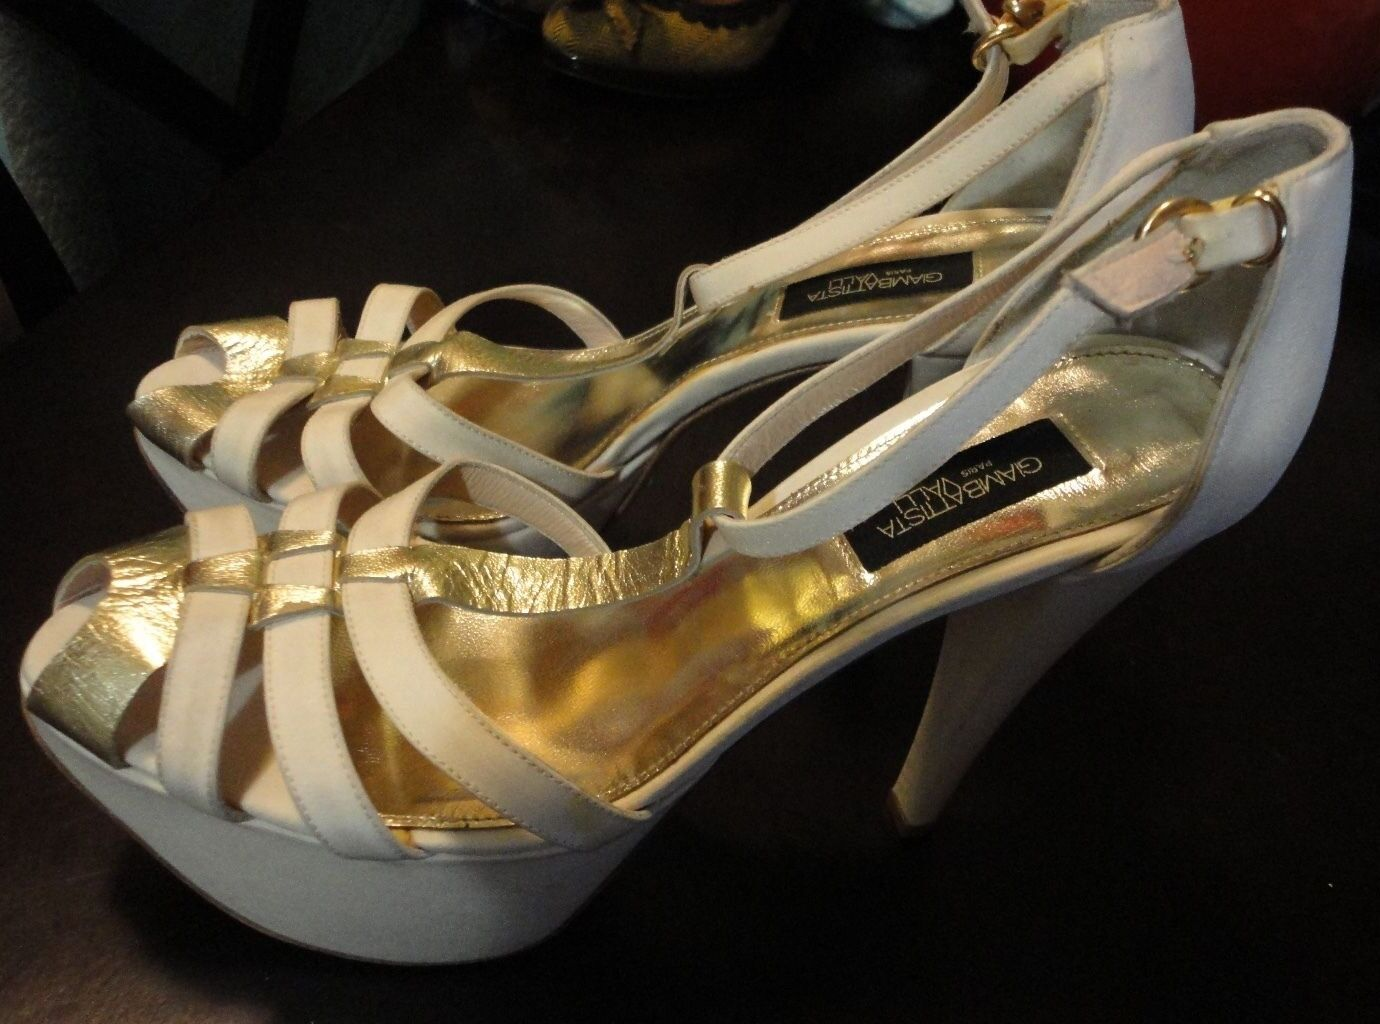 GIAMBATTISTA VALLI Paris High Platform Platform Platform Heels Weiß Satin Gold Leather 37.5 7.5 9139e5